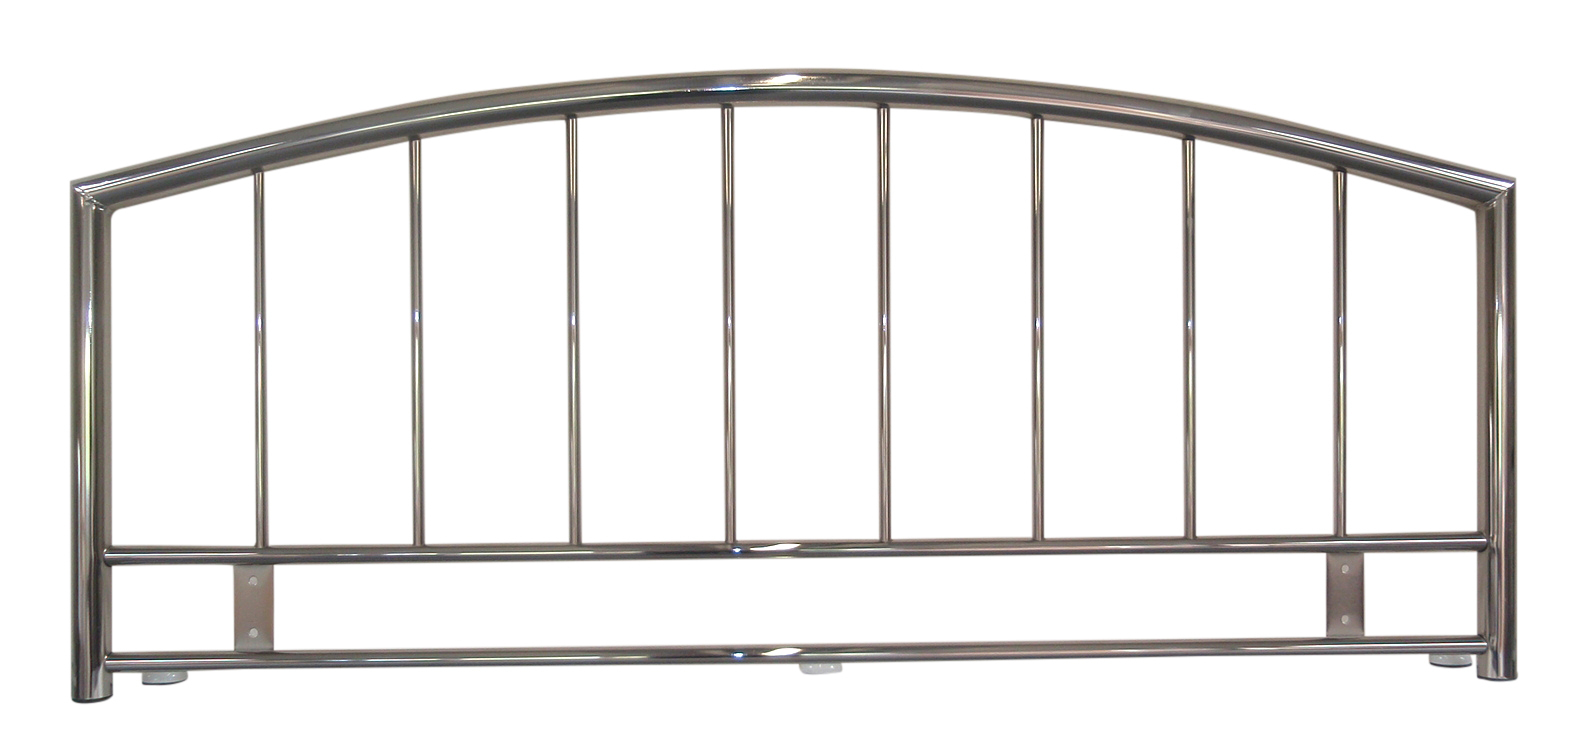 Metal Kingsize Headboard in Smoked Chrome Finish Crystals NEW